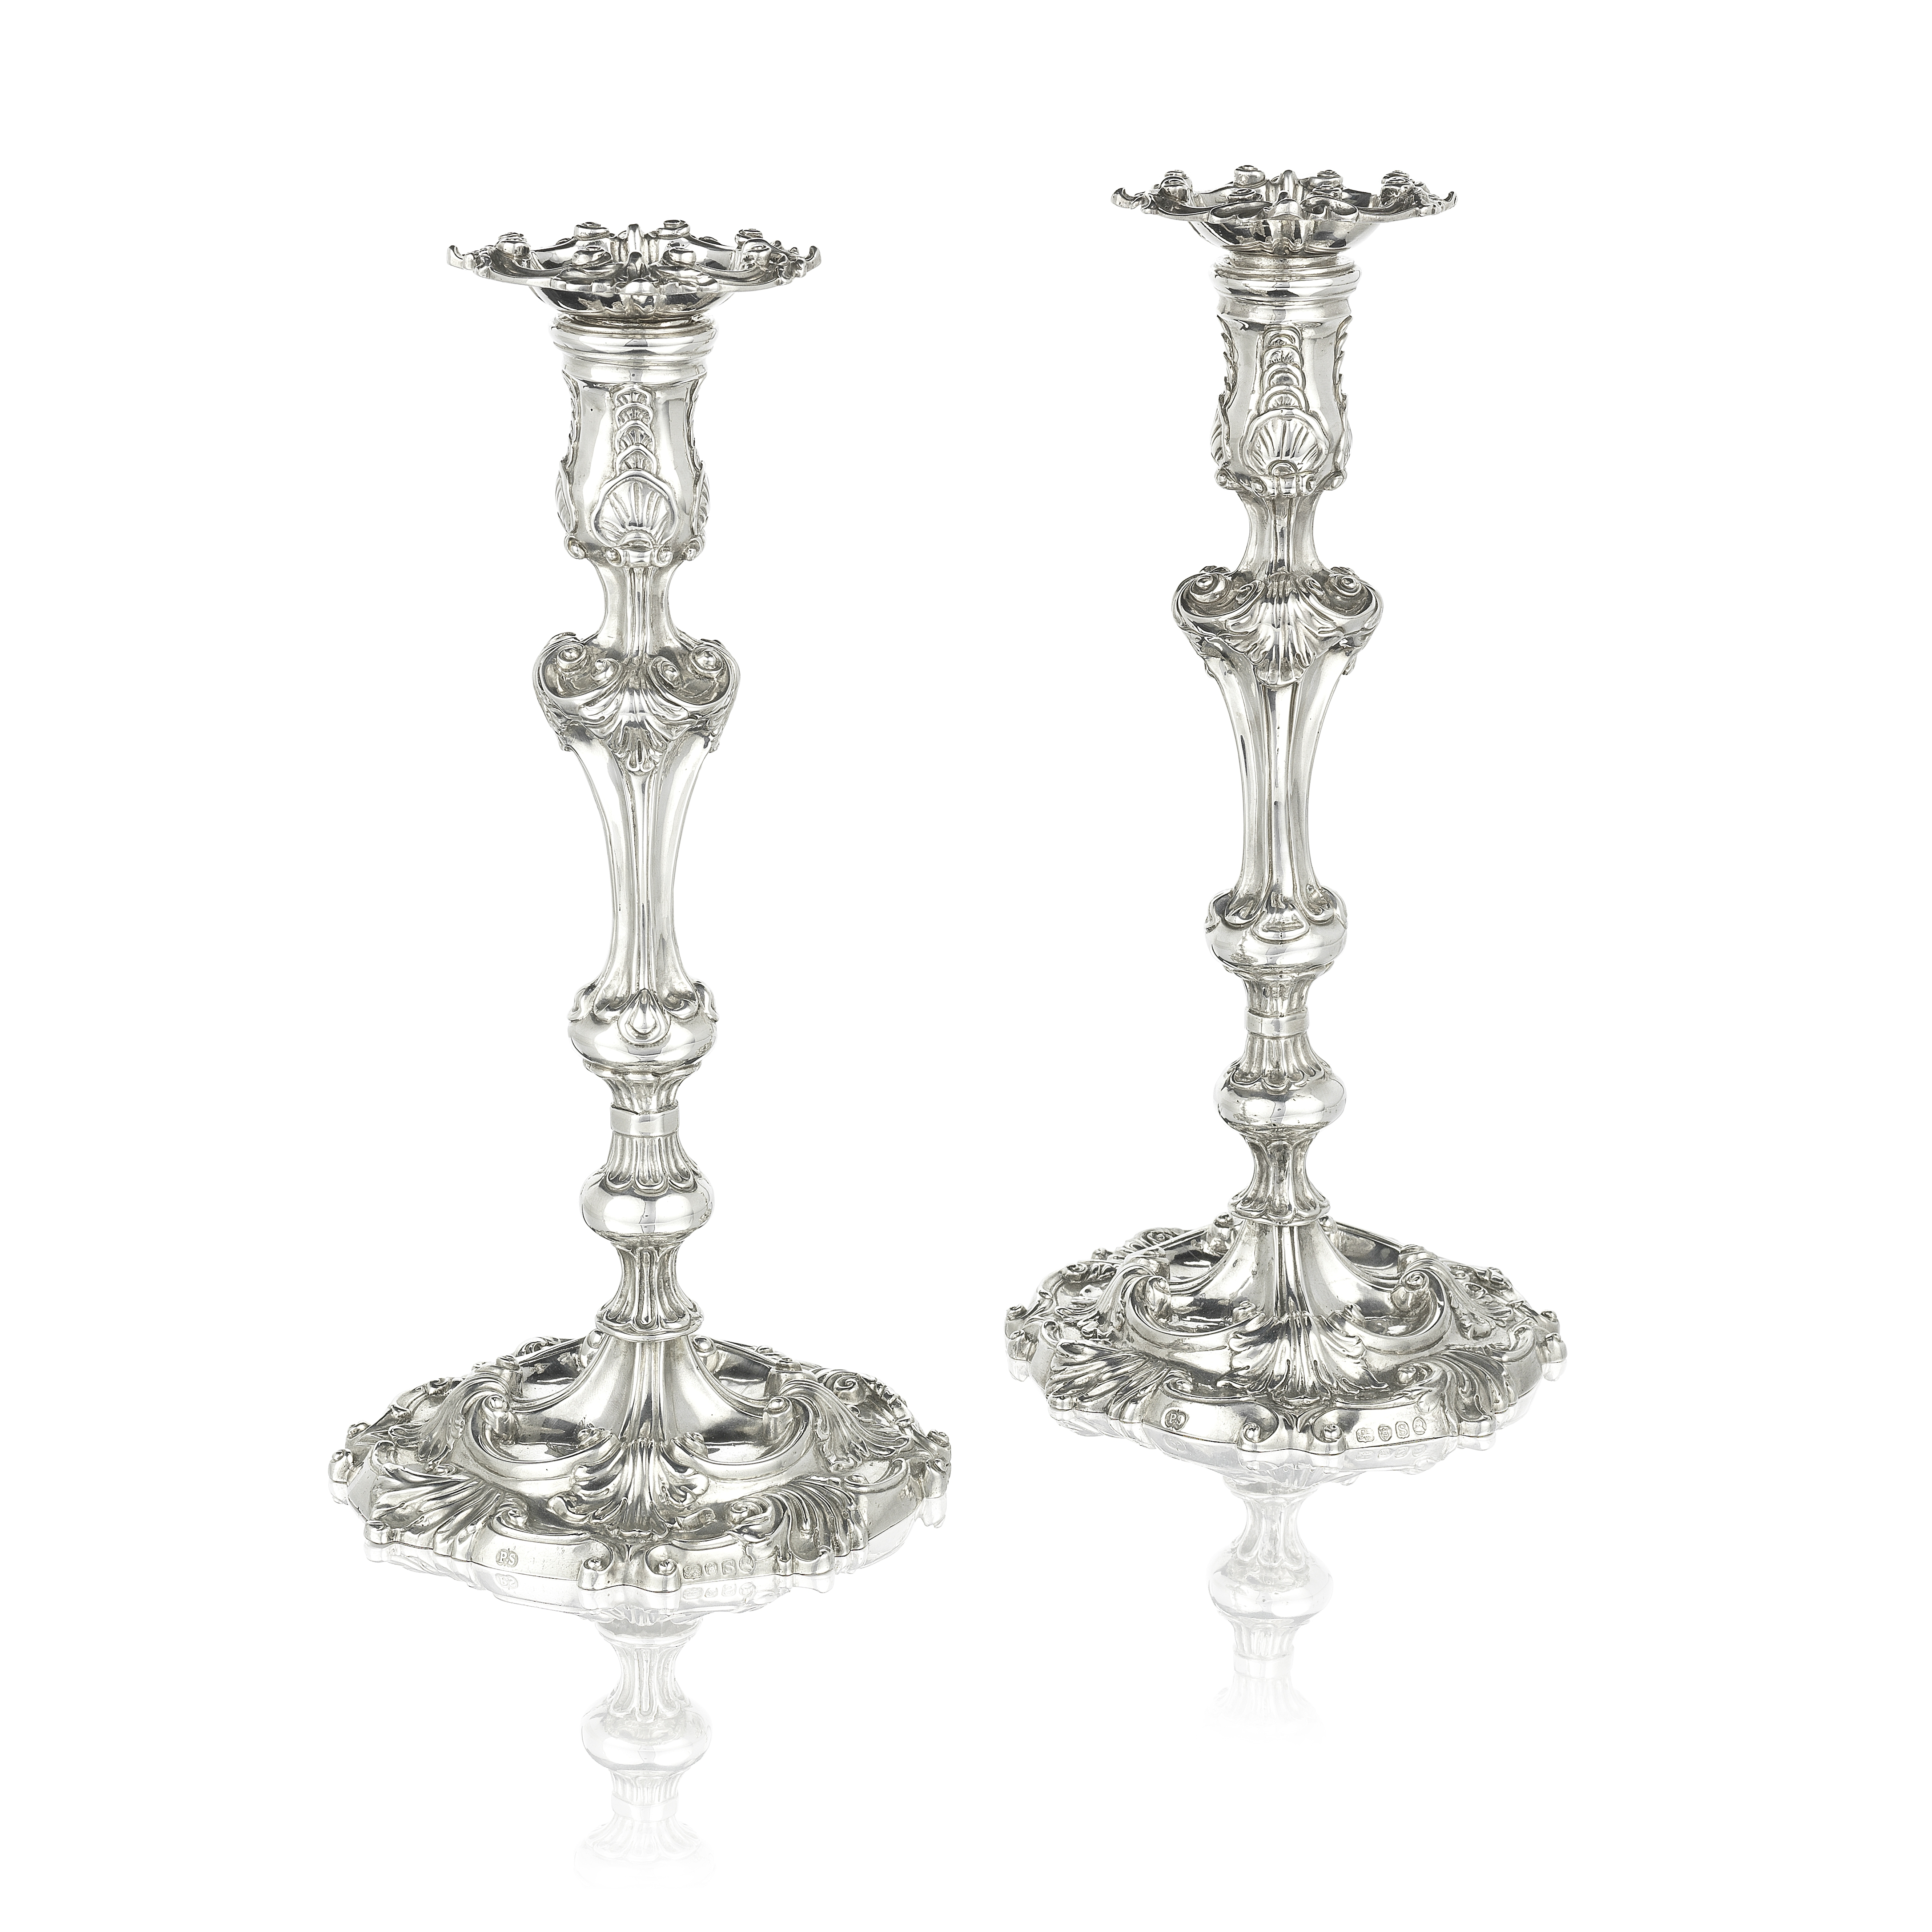 A pair of George III silver candlesticks Paul Storr, London 1813 (2)